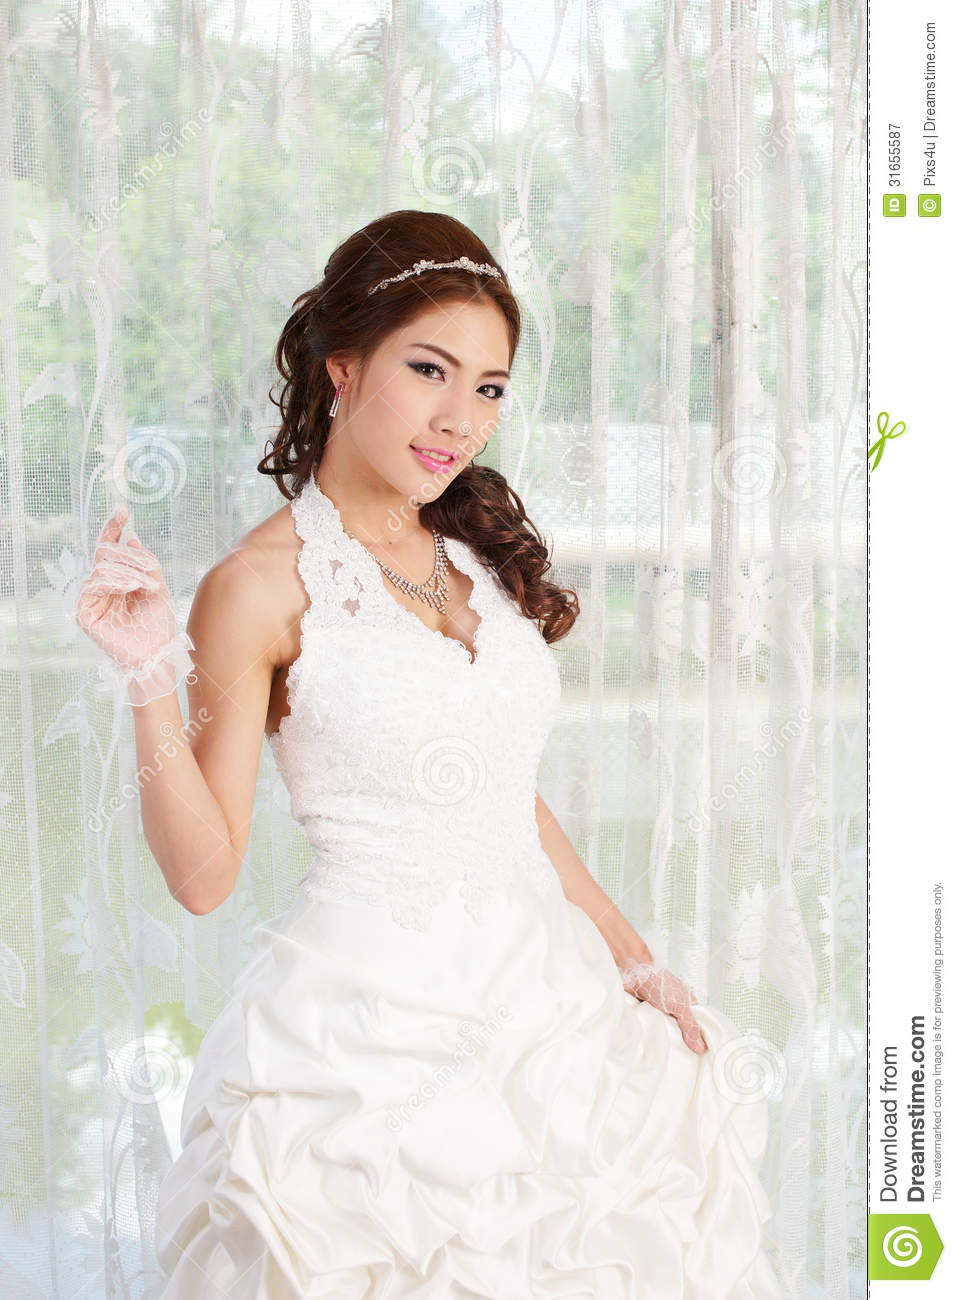 garlands asian singles Find meetups in garland, texas about singles and meet people in your local community who share your interests.